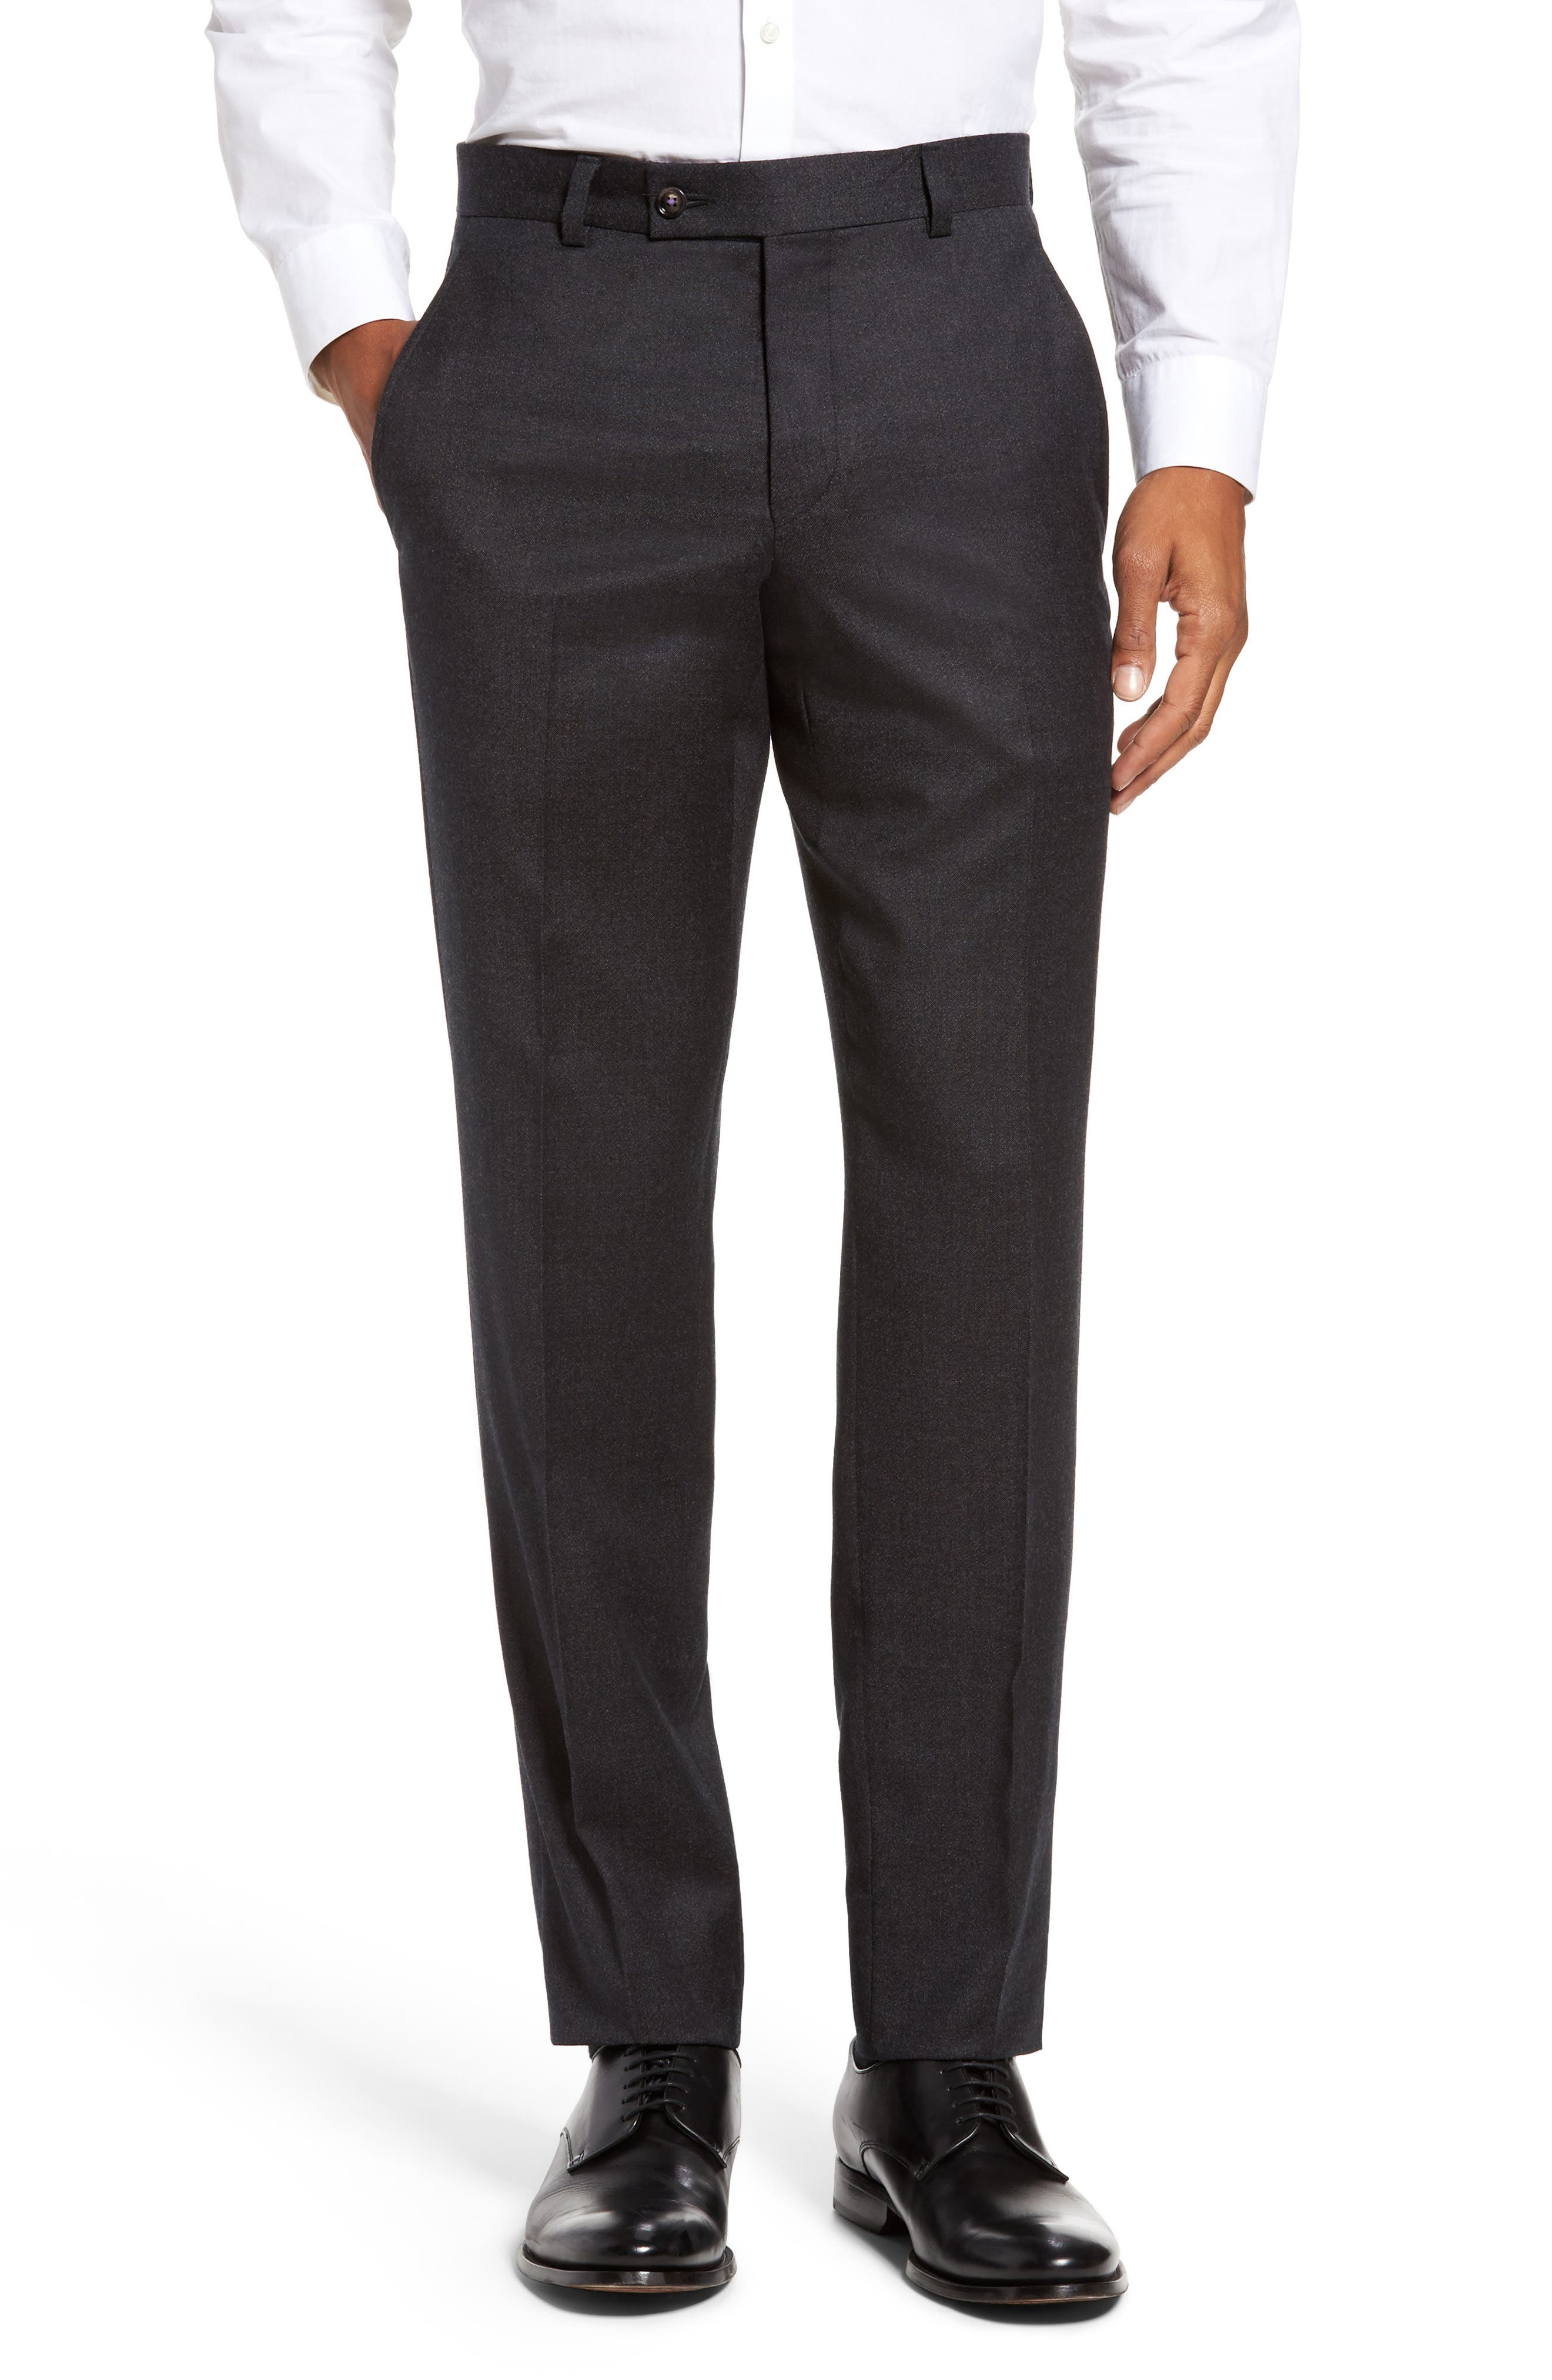 Jeremy Flat Front Solid Wool Trousers,                         Main,                         color, Light Grey